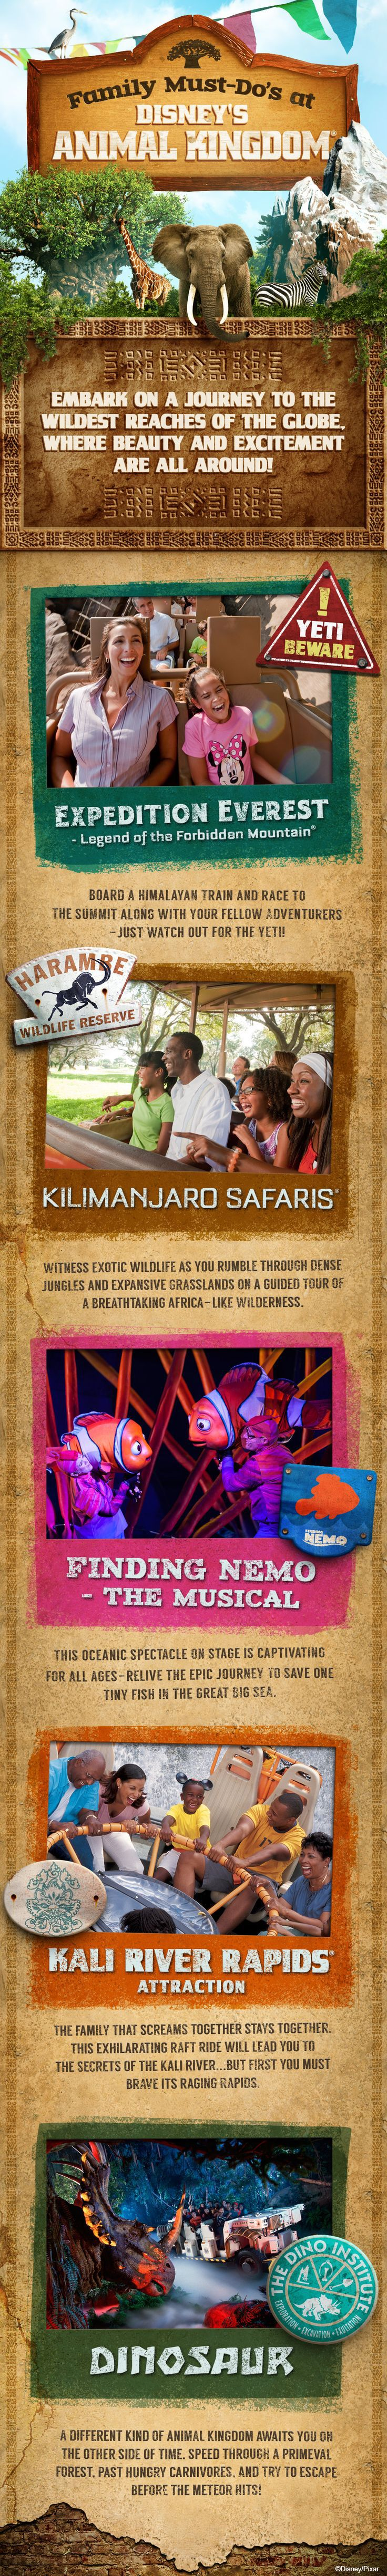 Family Must Do's At Disney's Animal Kingdom